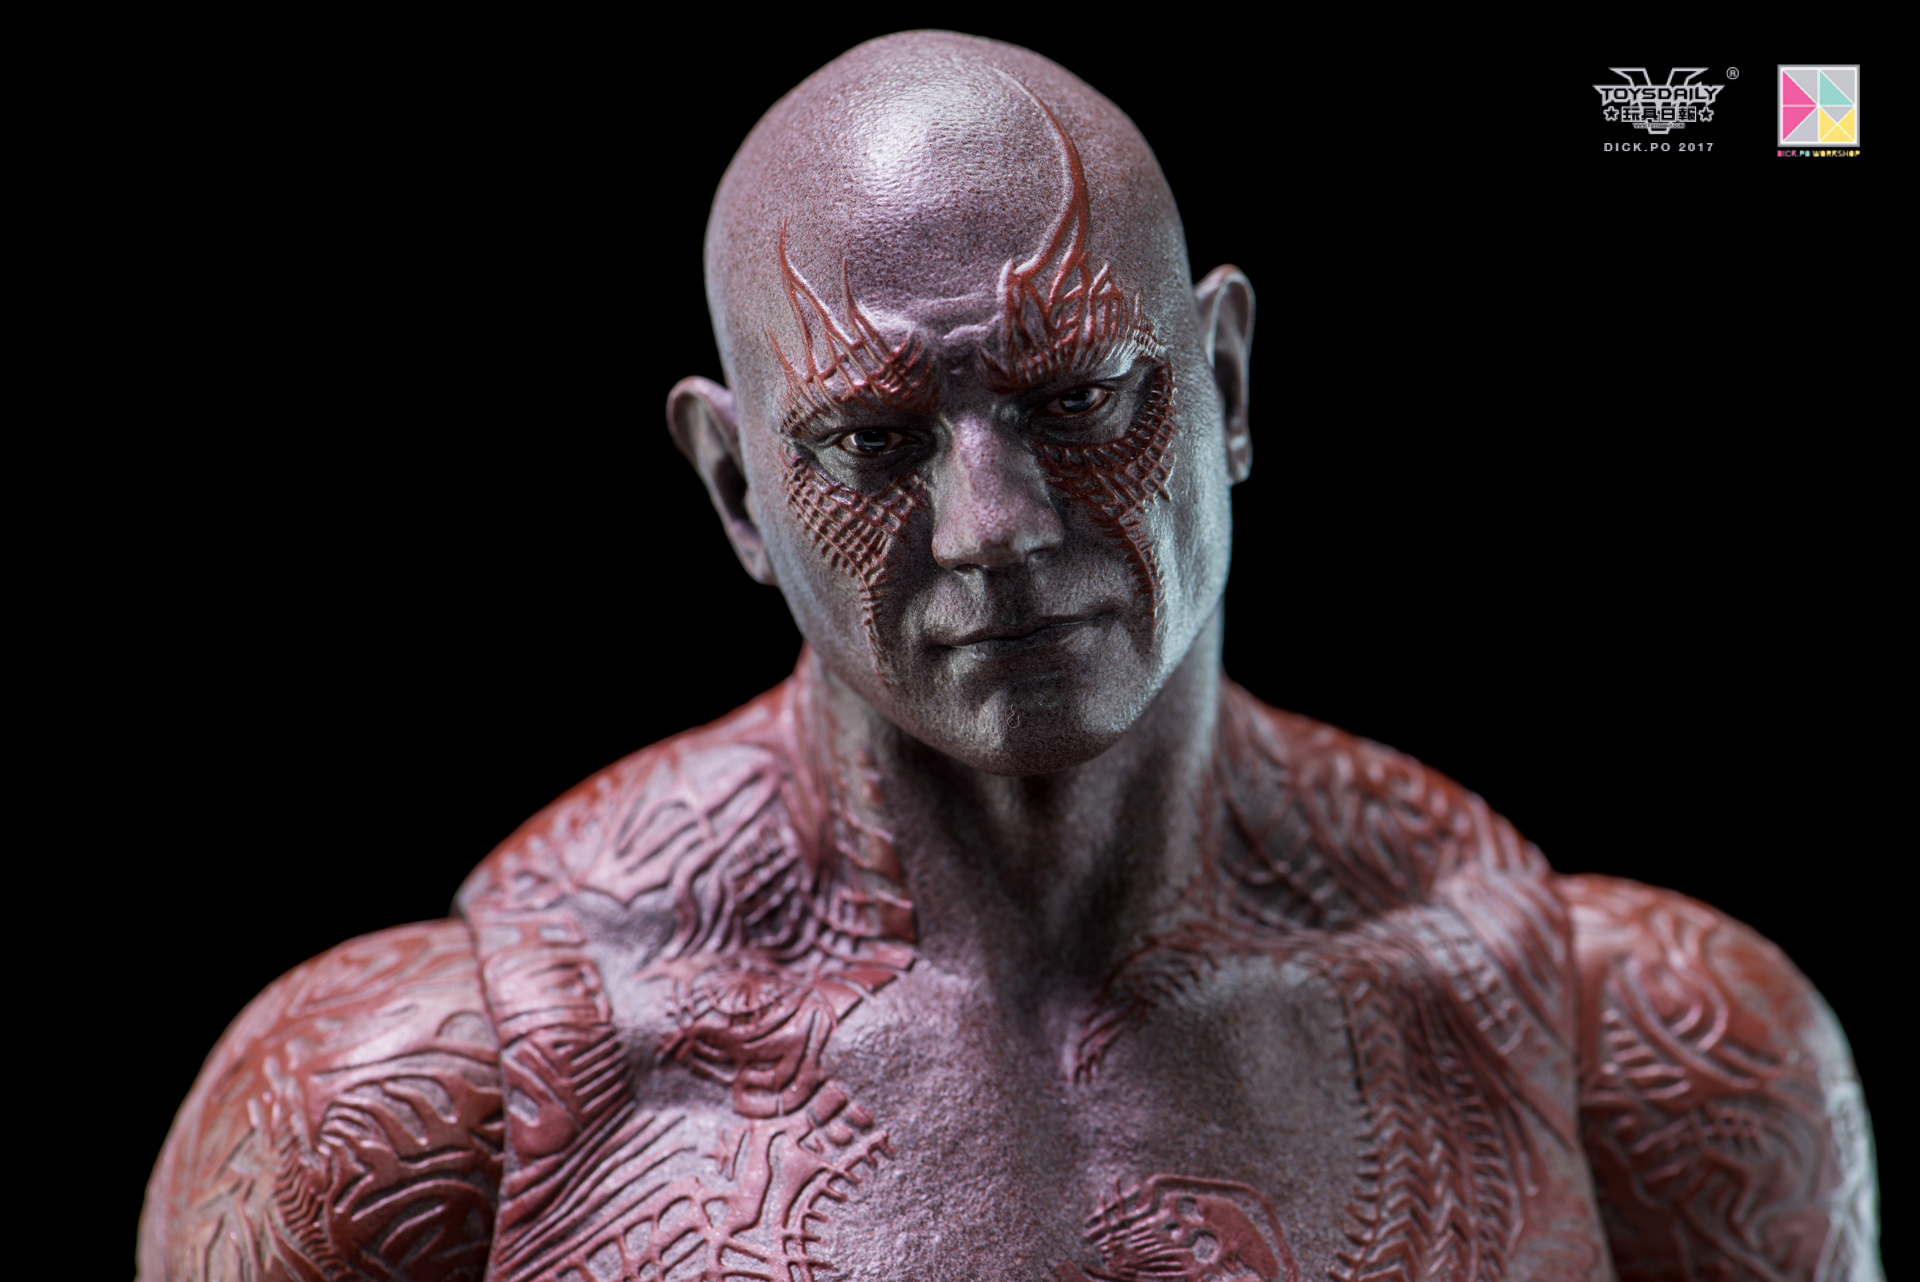 toysdaily_dick.po_Hottoys_DARX-22.jpg